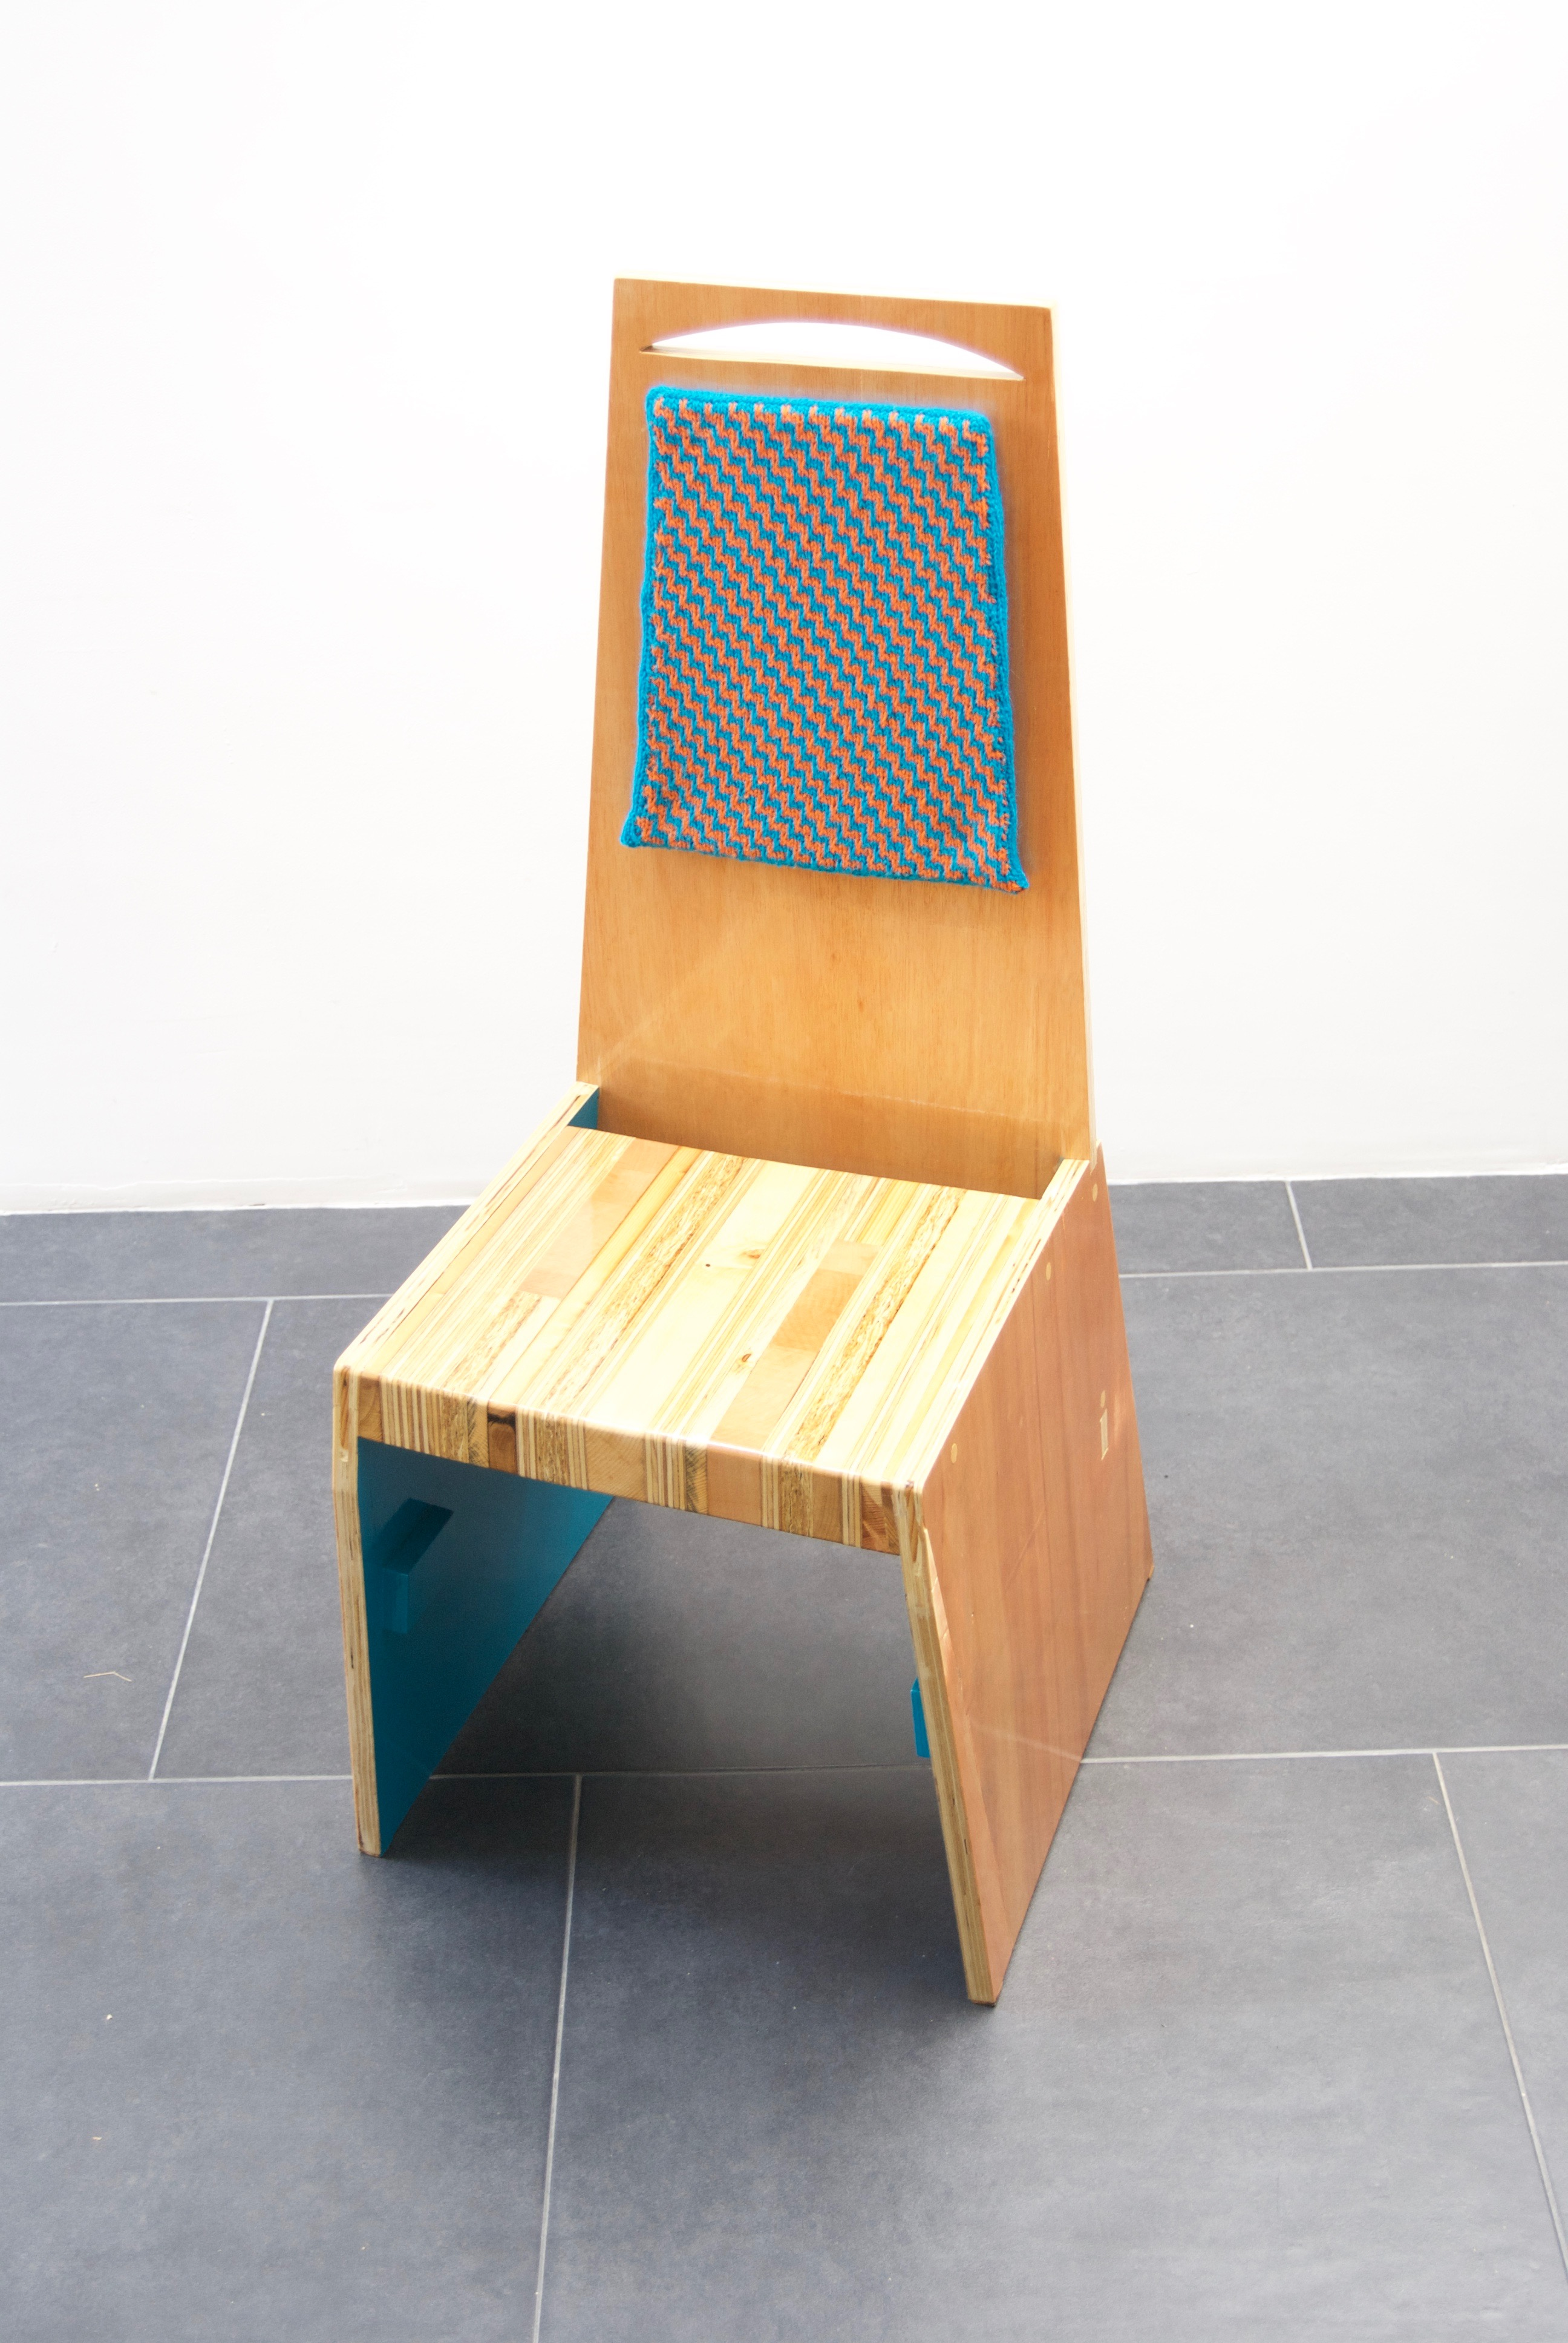 Jester chair lana interiors furniture and furnishings for Furniture northampton